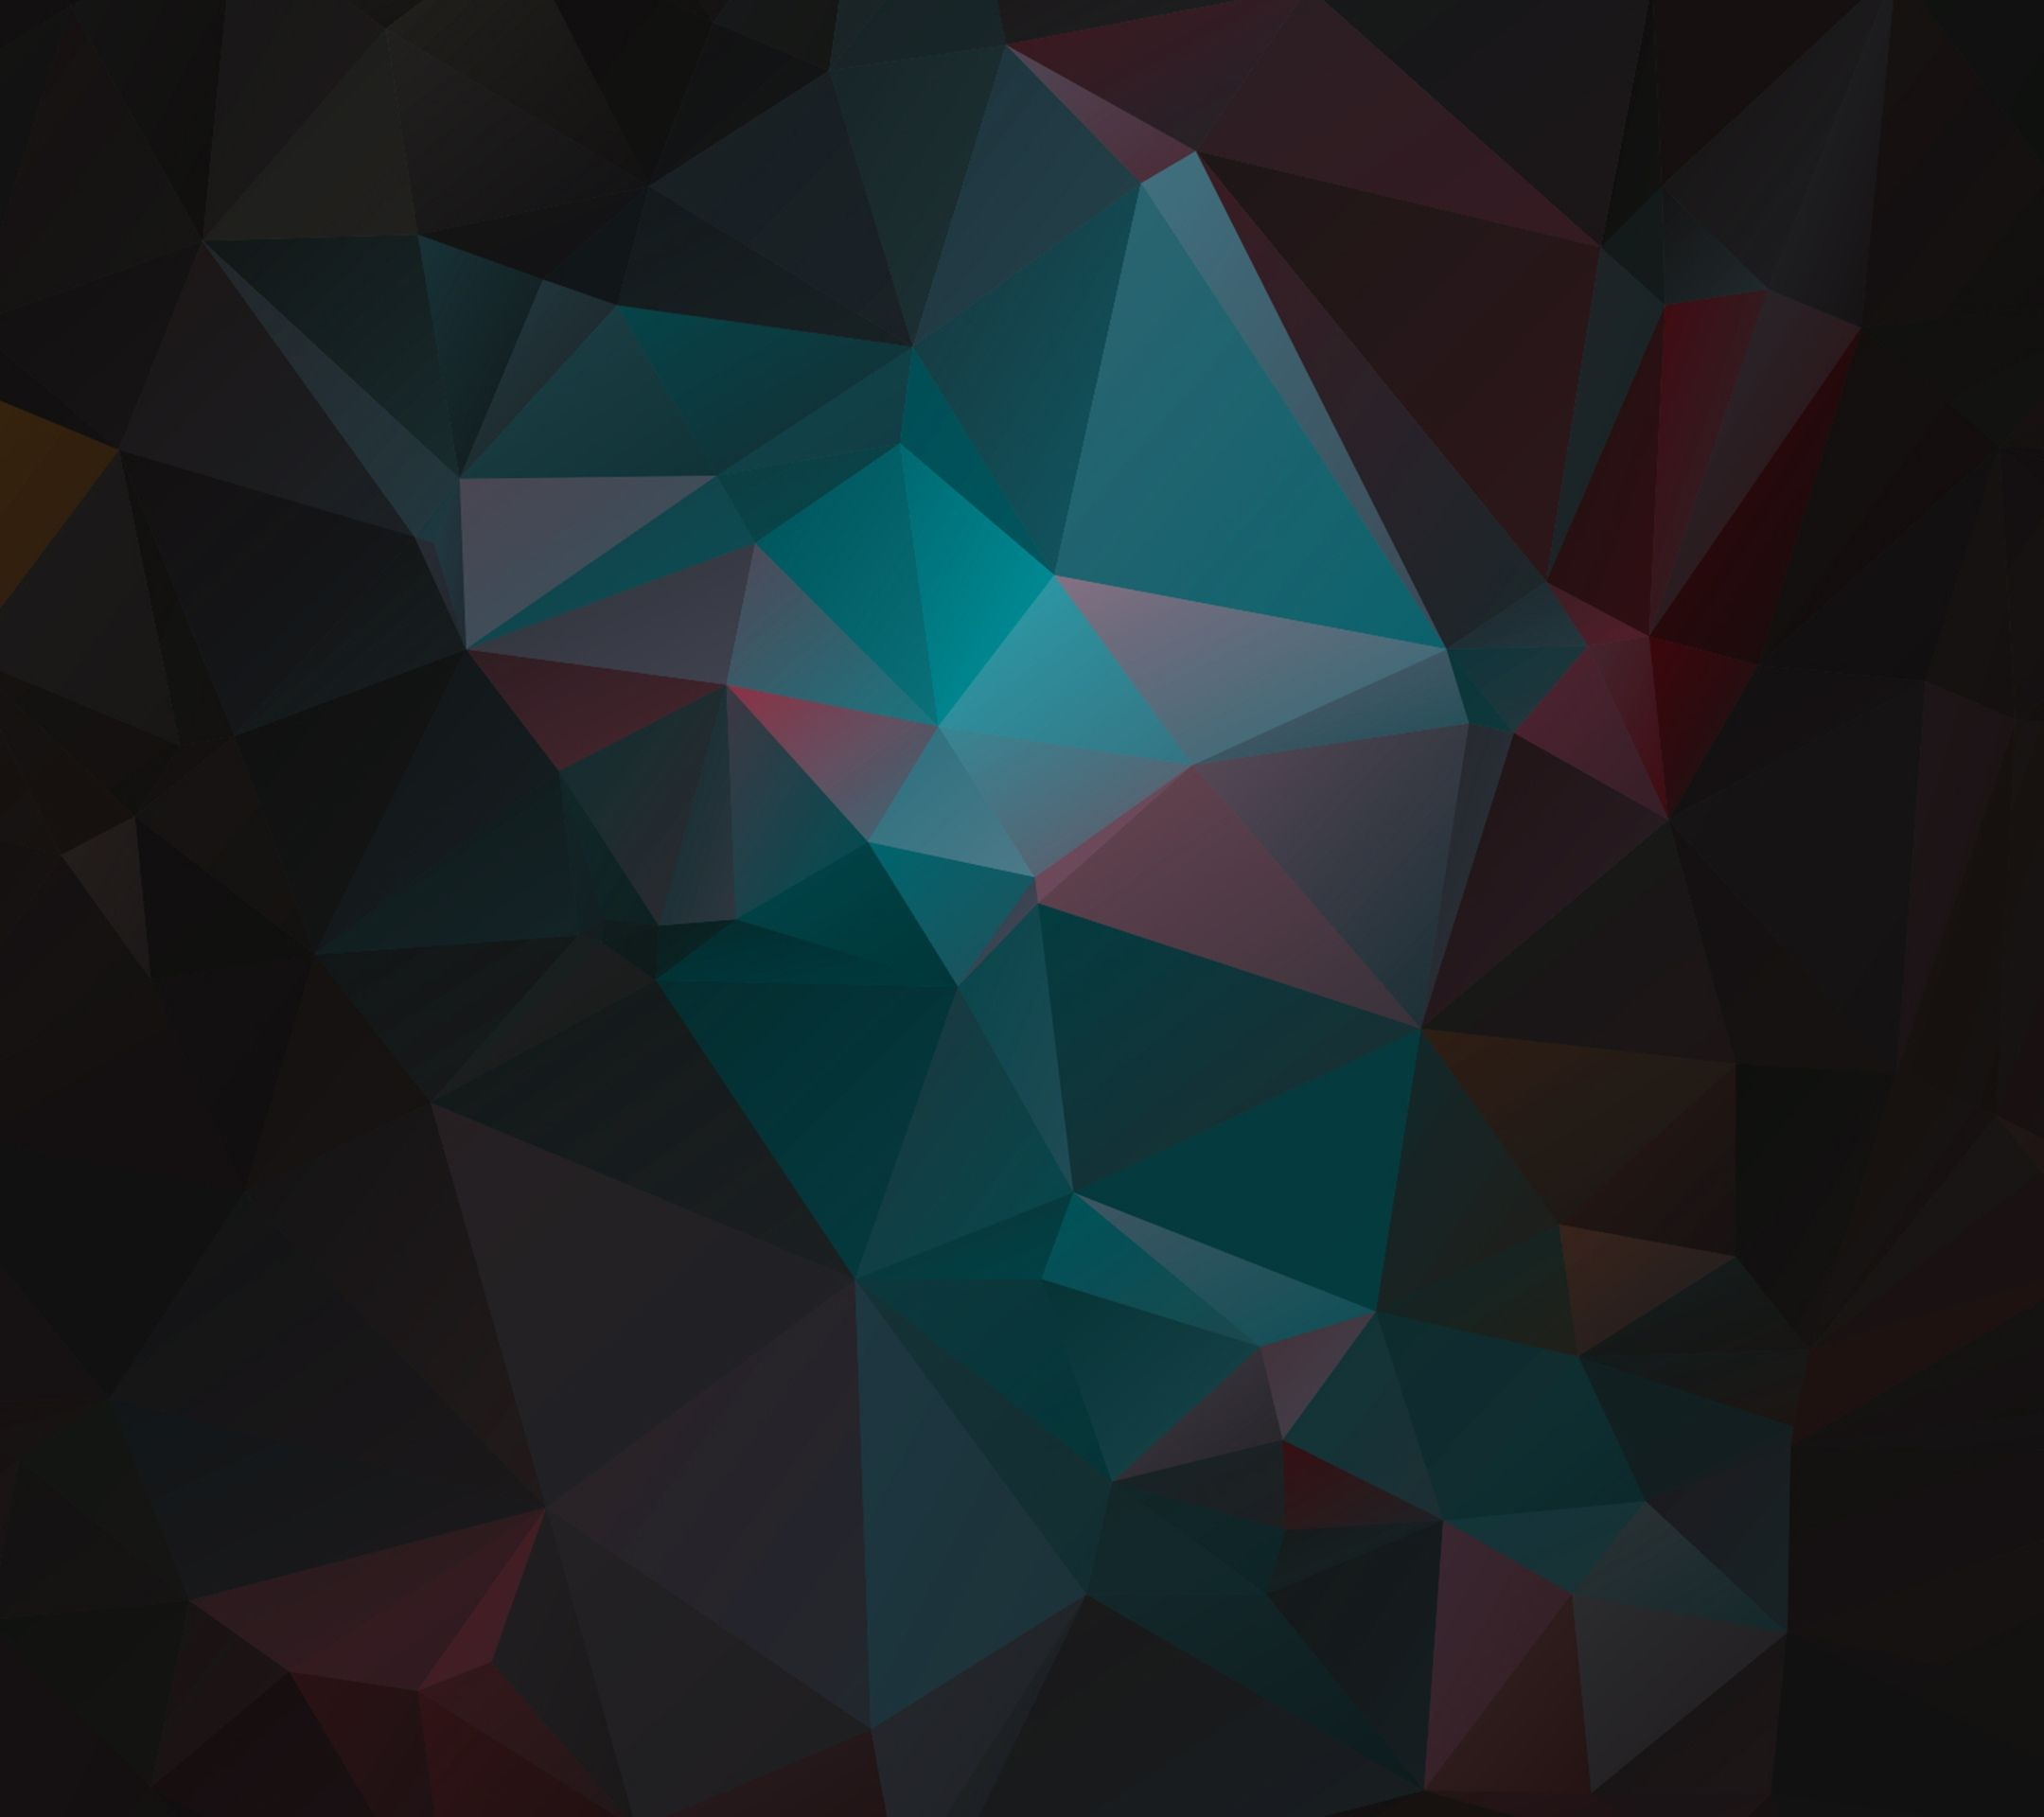 Geometric Wallpaper: Tap To See More Creative Polygon Geometric